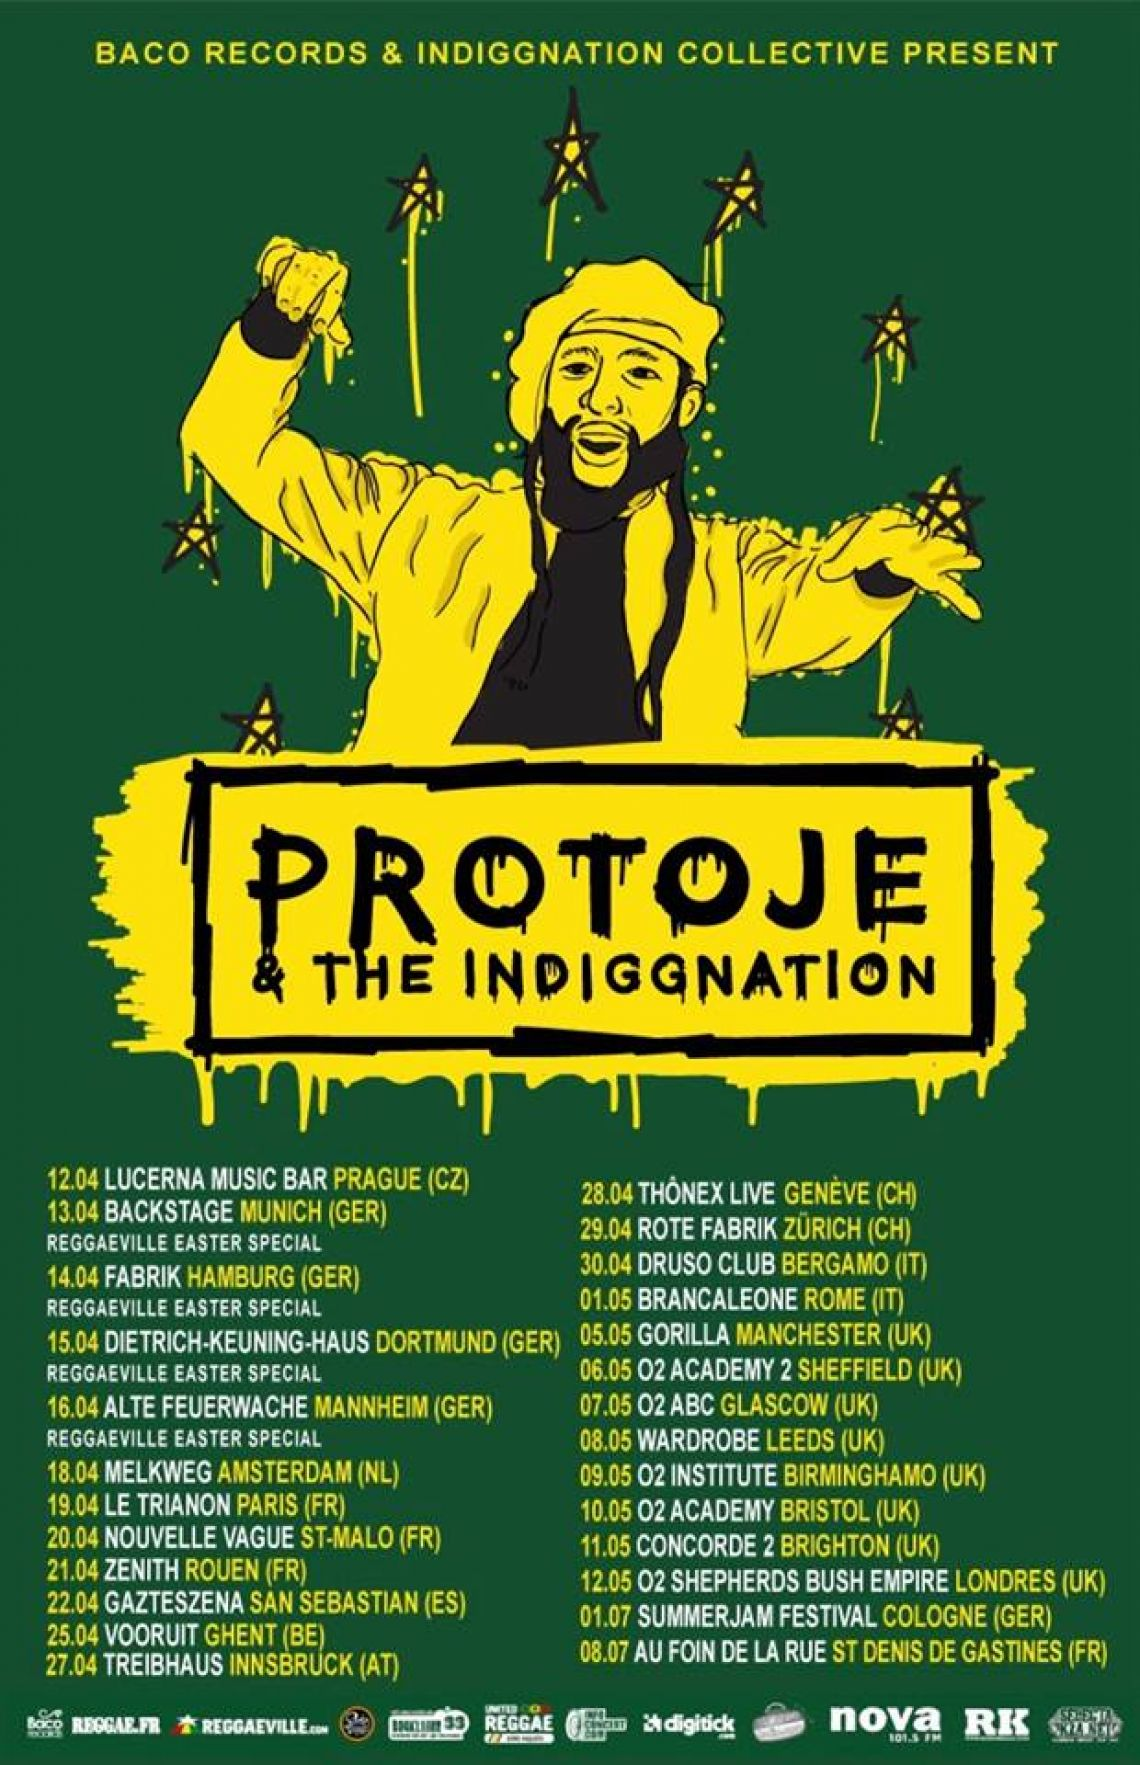 PROTOJE The Indiggnation on Tour in Europe April/May 2017